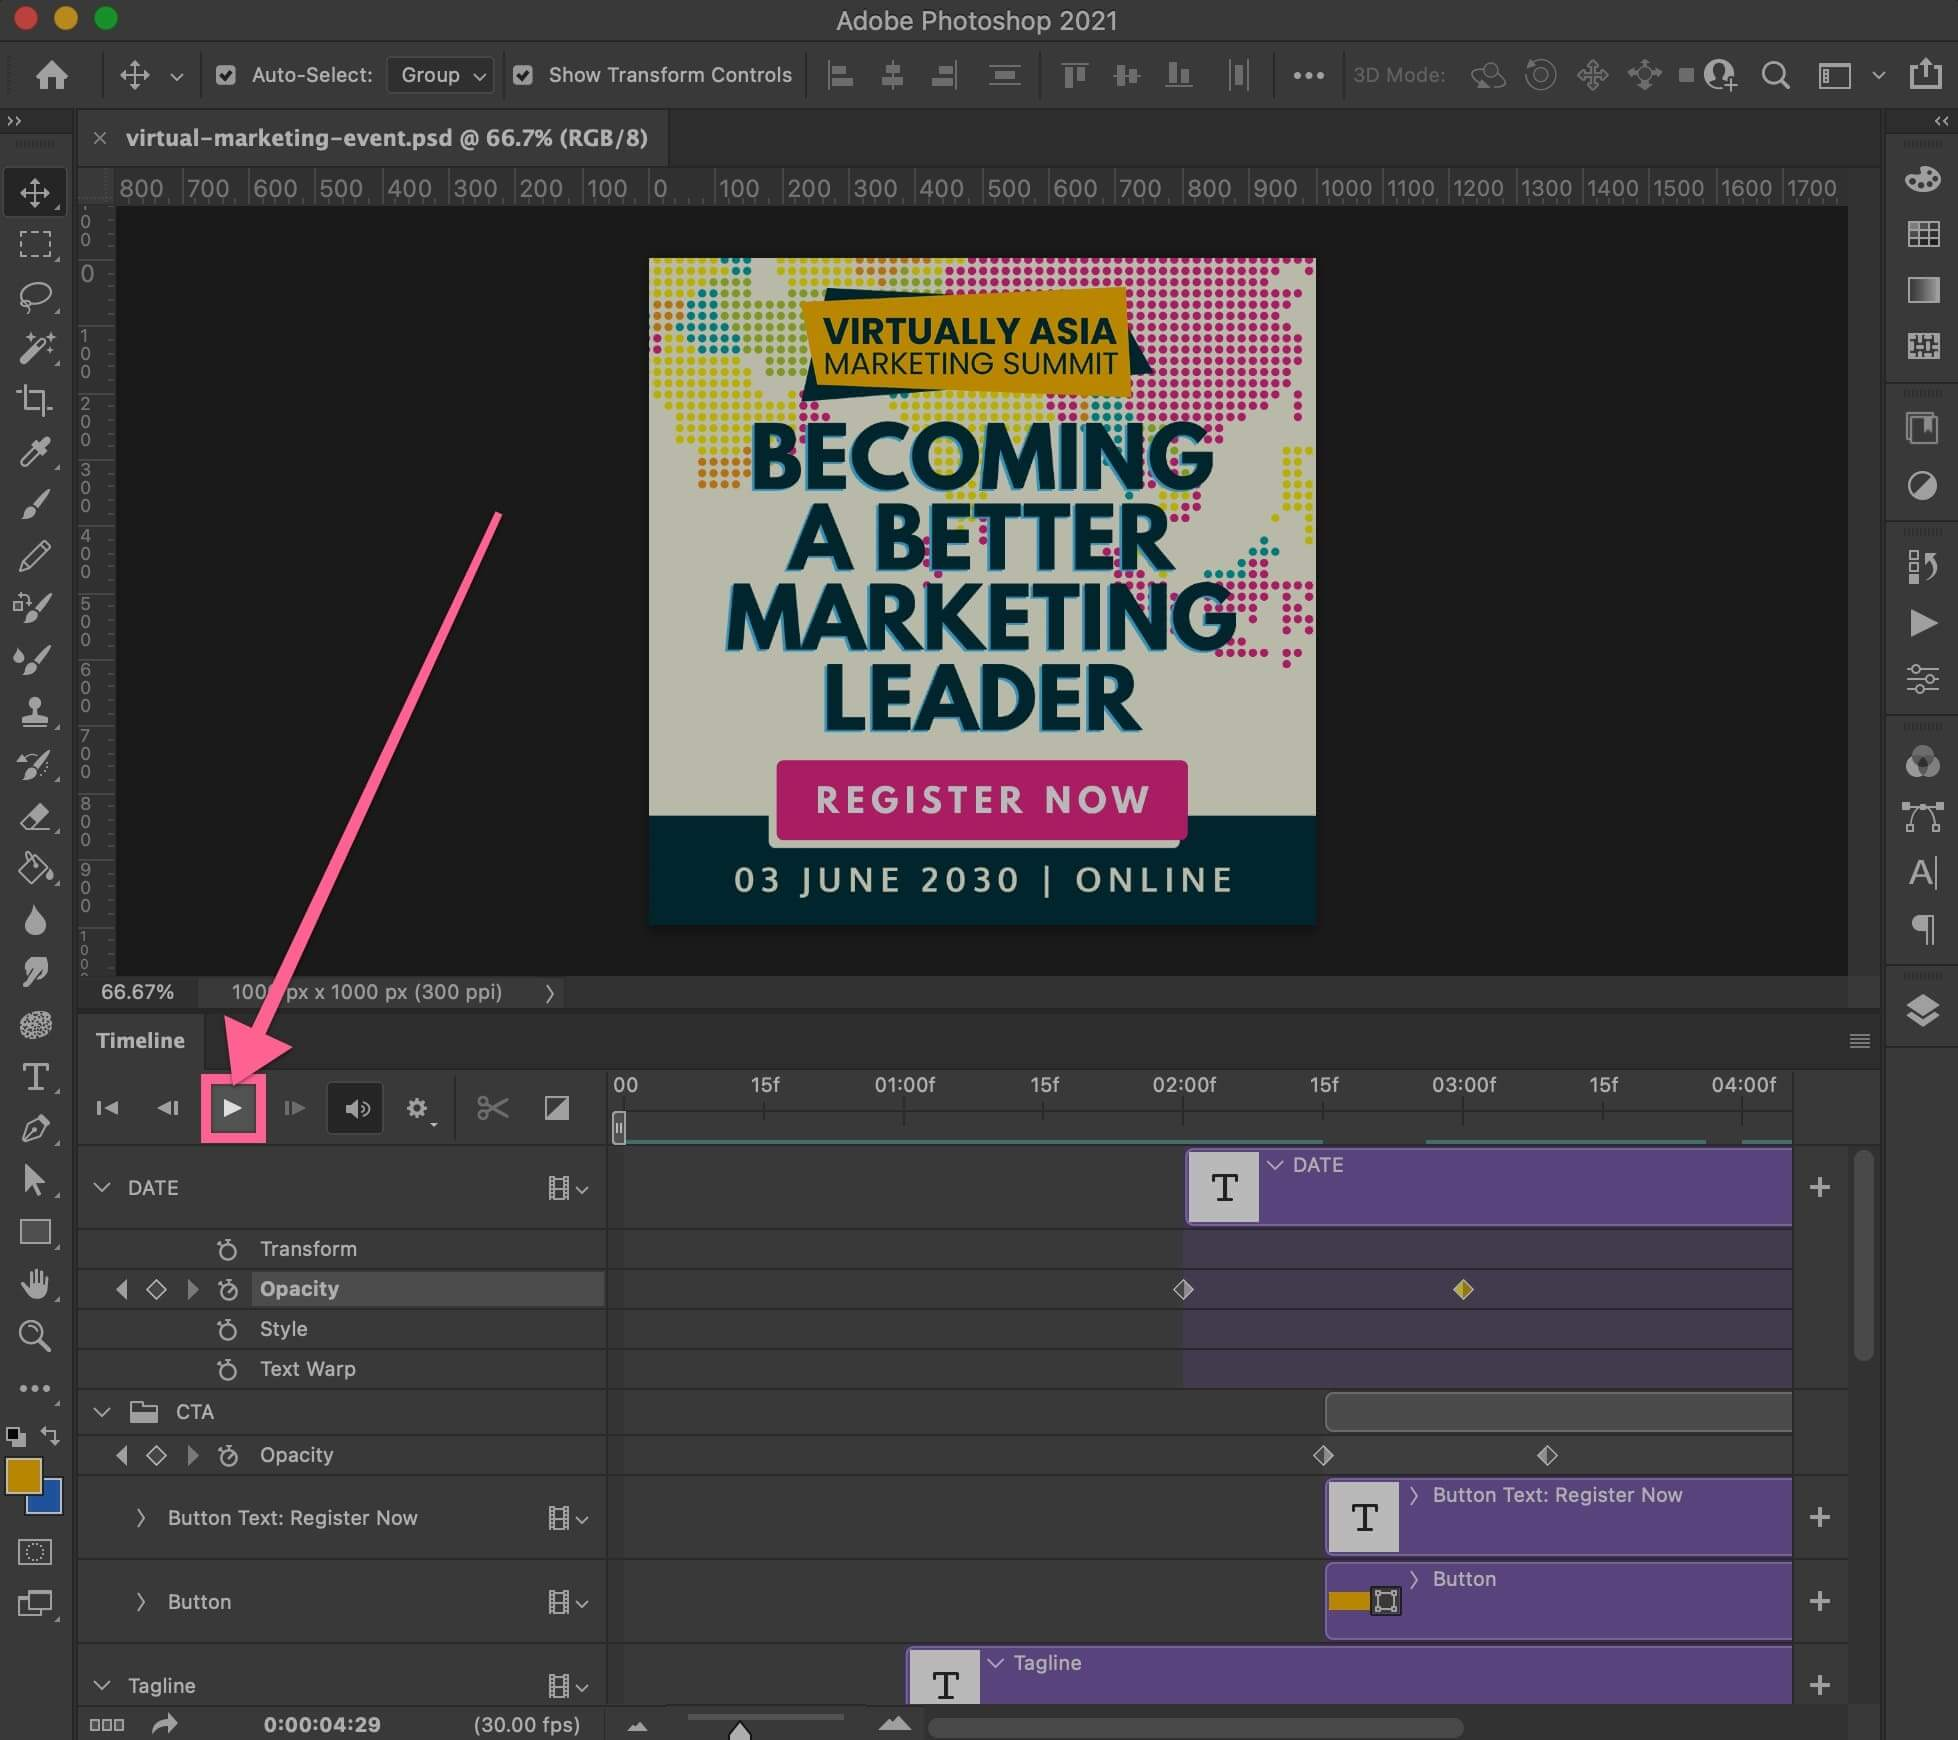 Preview and play your GIF animation in Photoshop Timeline